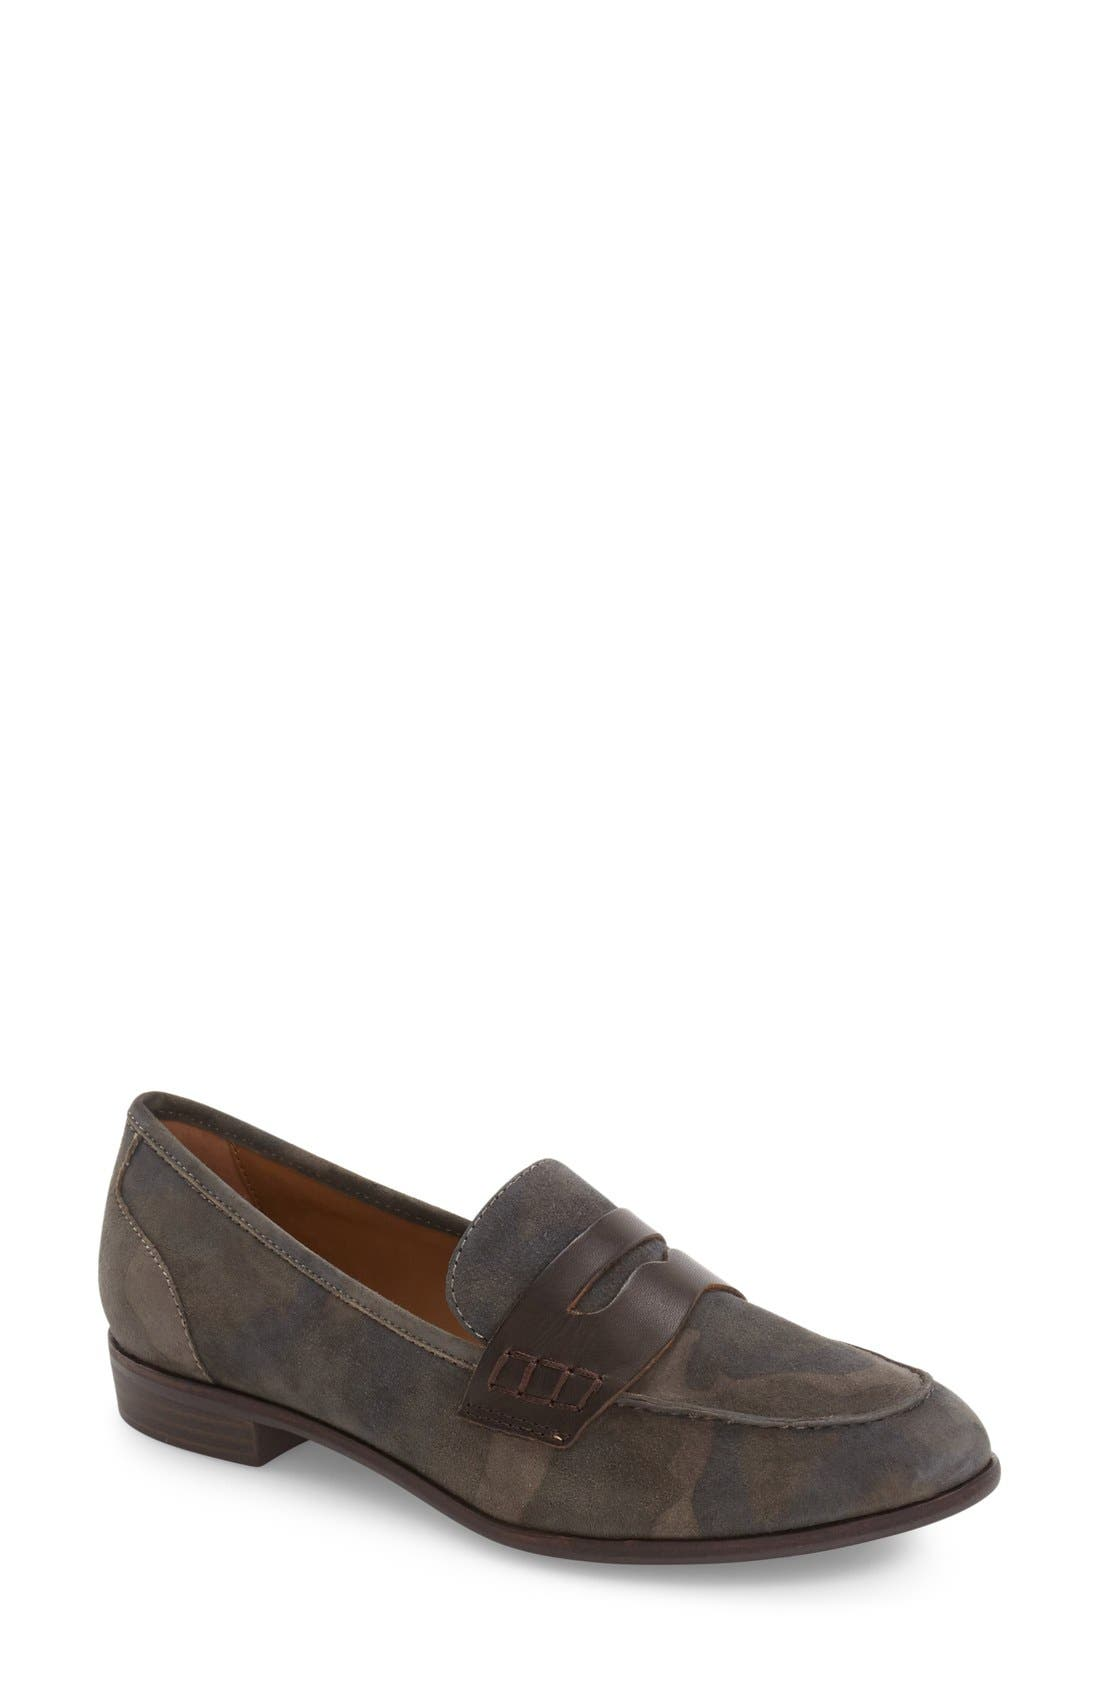 Emilia Penny Loafer,                             Main thumbnail 1, color,                             Camo/ Espresso Suede